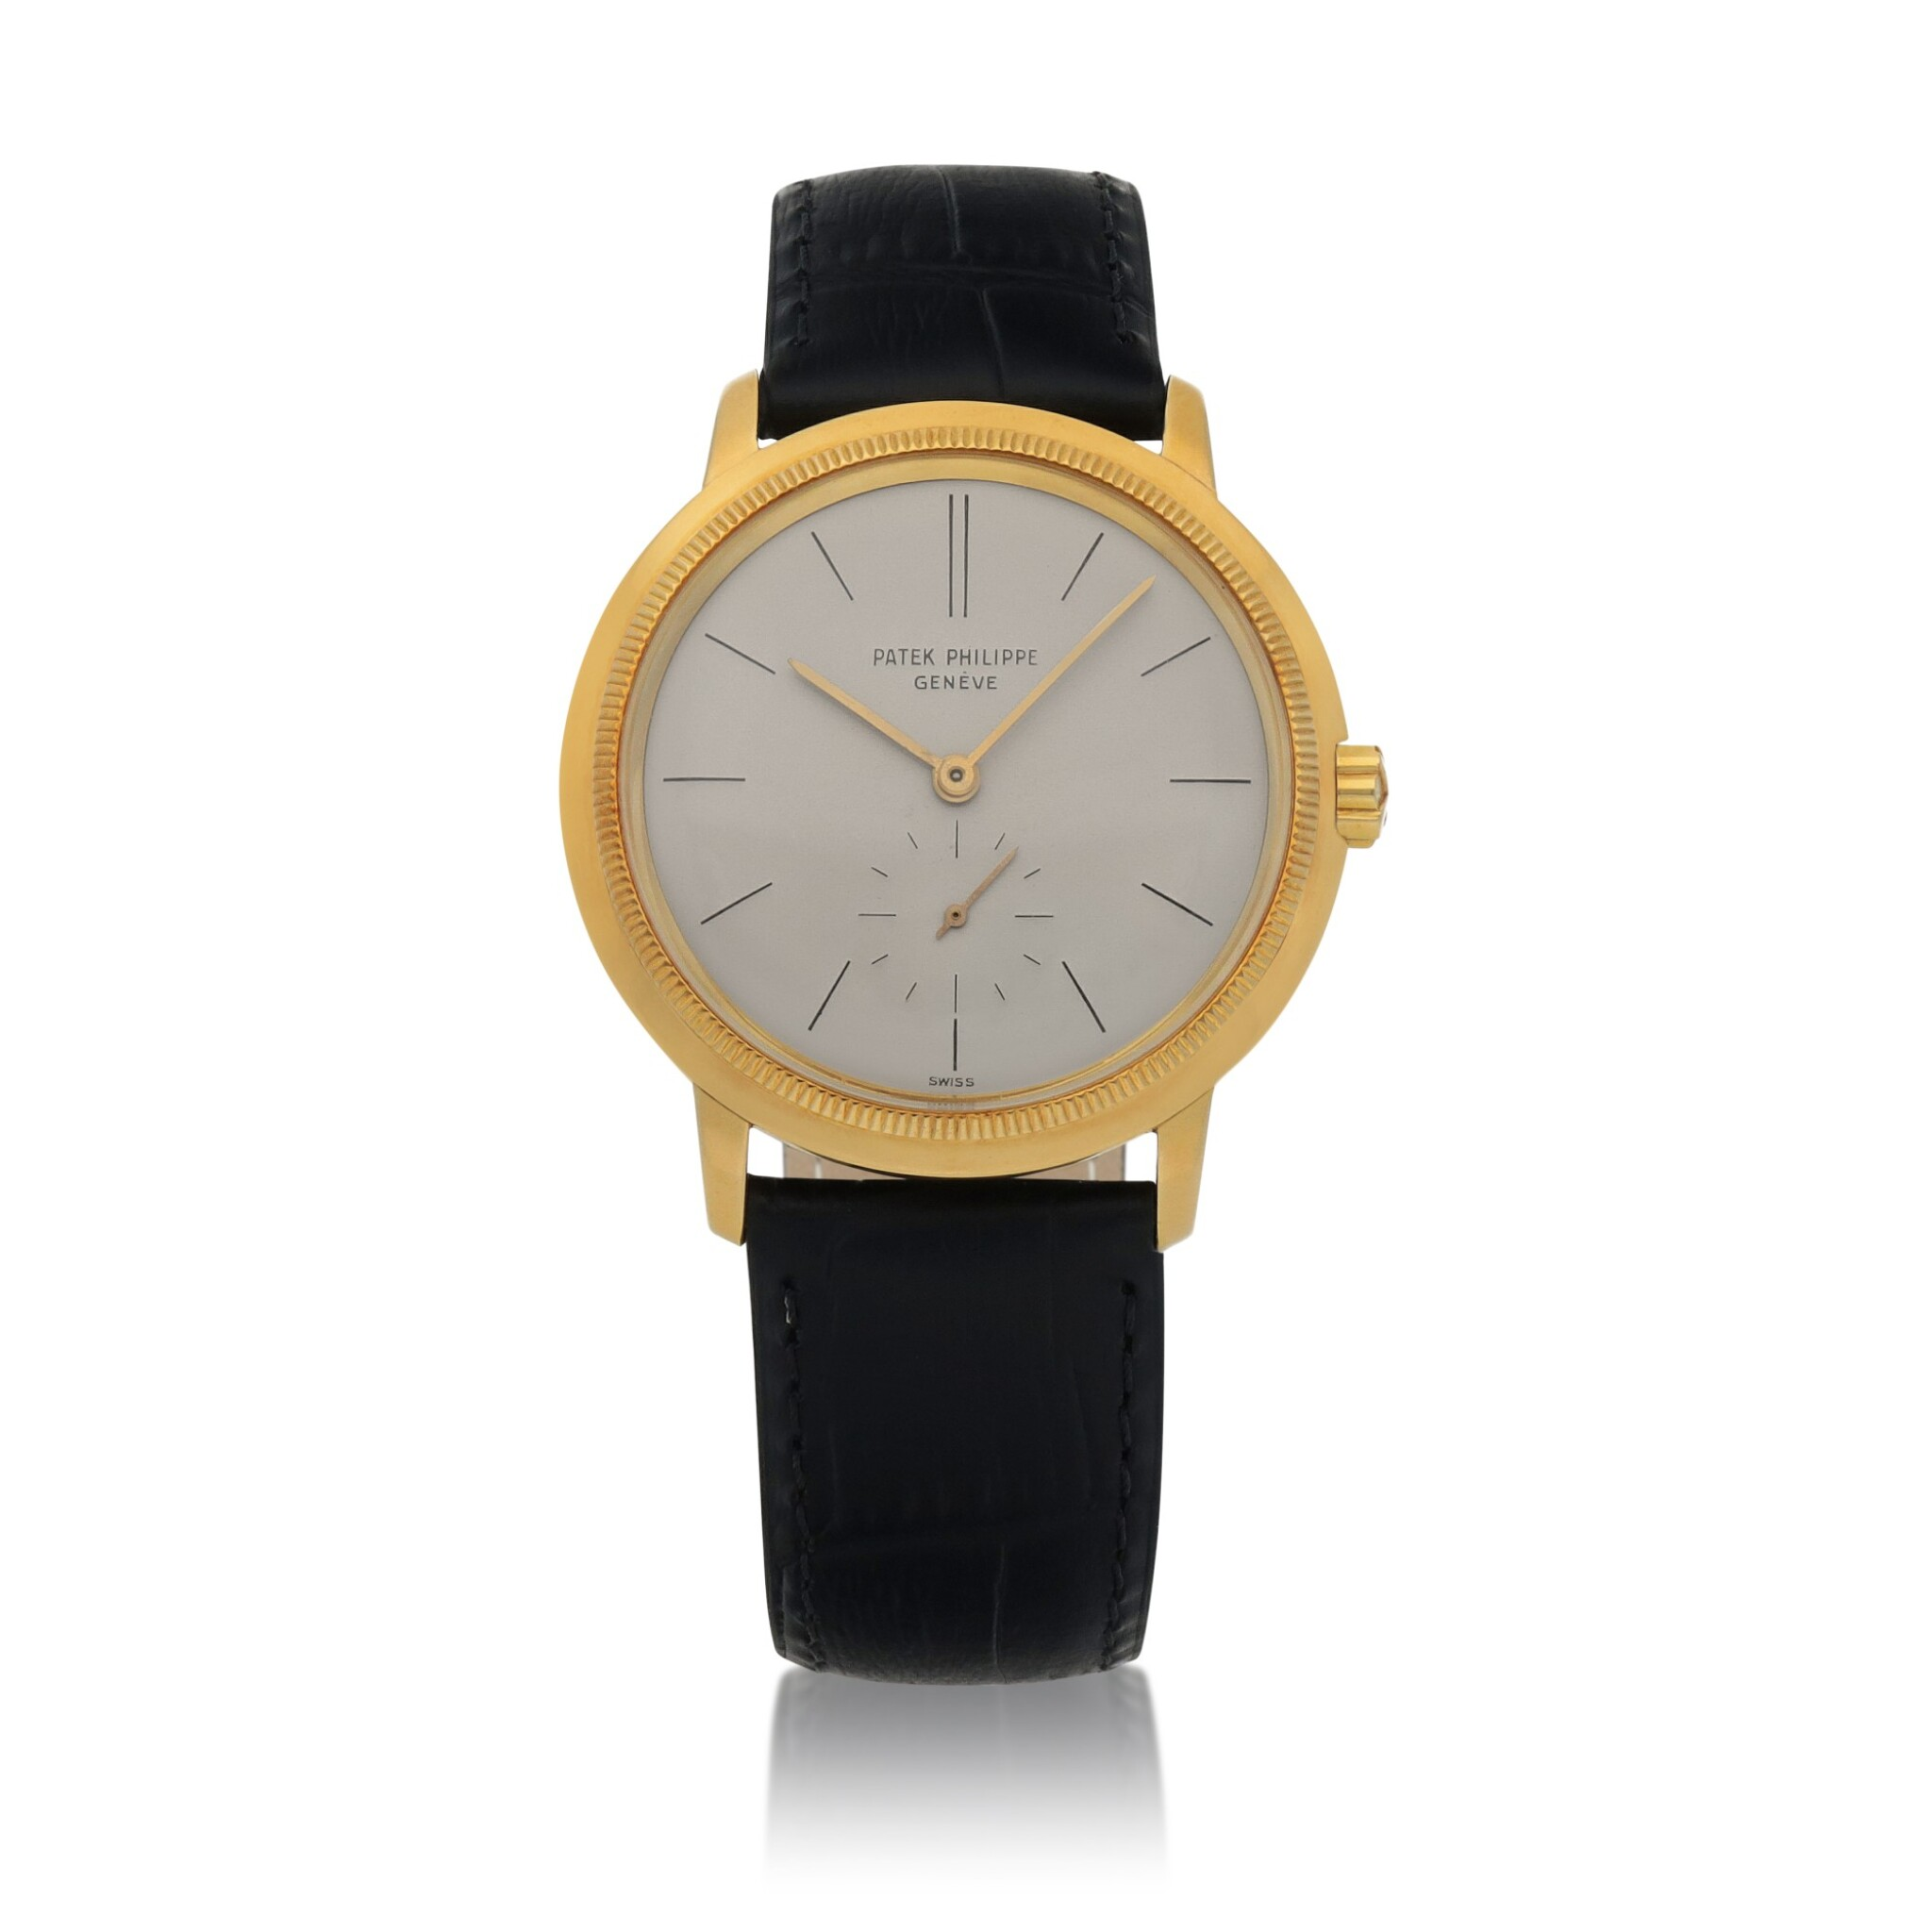 View full screen - View 1 of Lot 87. Ref. 3454 Yellow gold wristwatch with 'reeded' bezel Made in 1962 | 百達翡麗 3454型號黃金腕錶,1962年製.